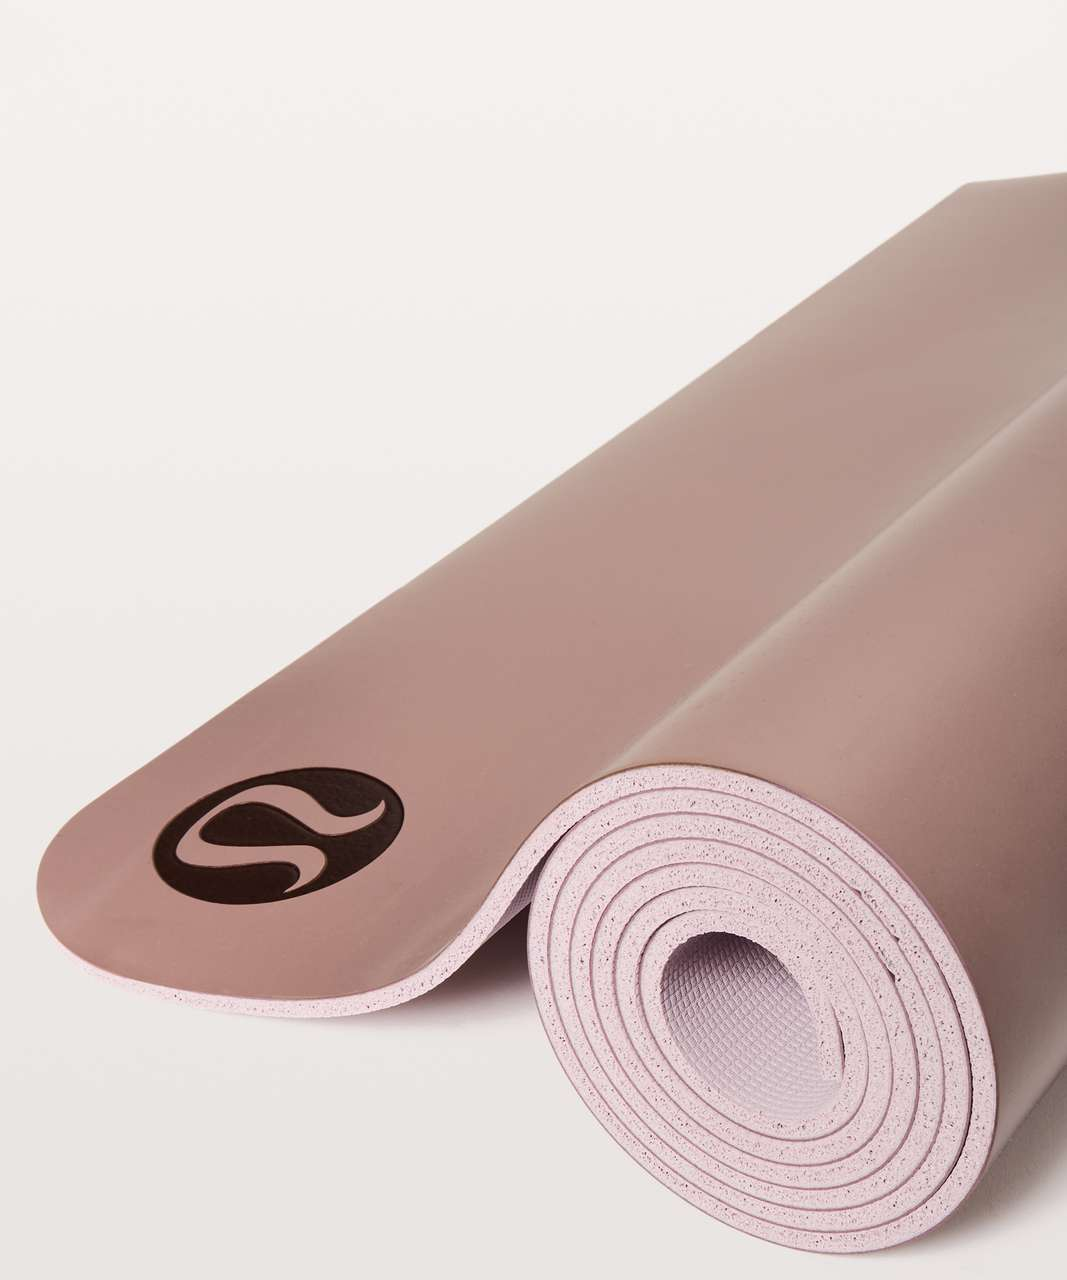 Lululemon The Reversible Mat 5mm - Misty Mauve / Porcelain Pink